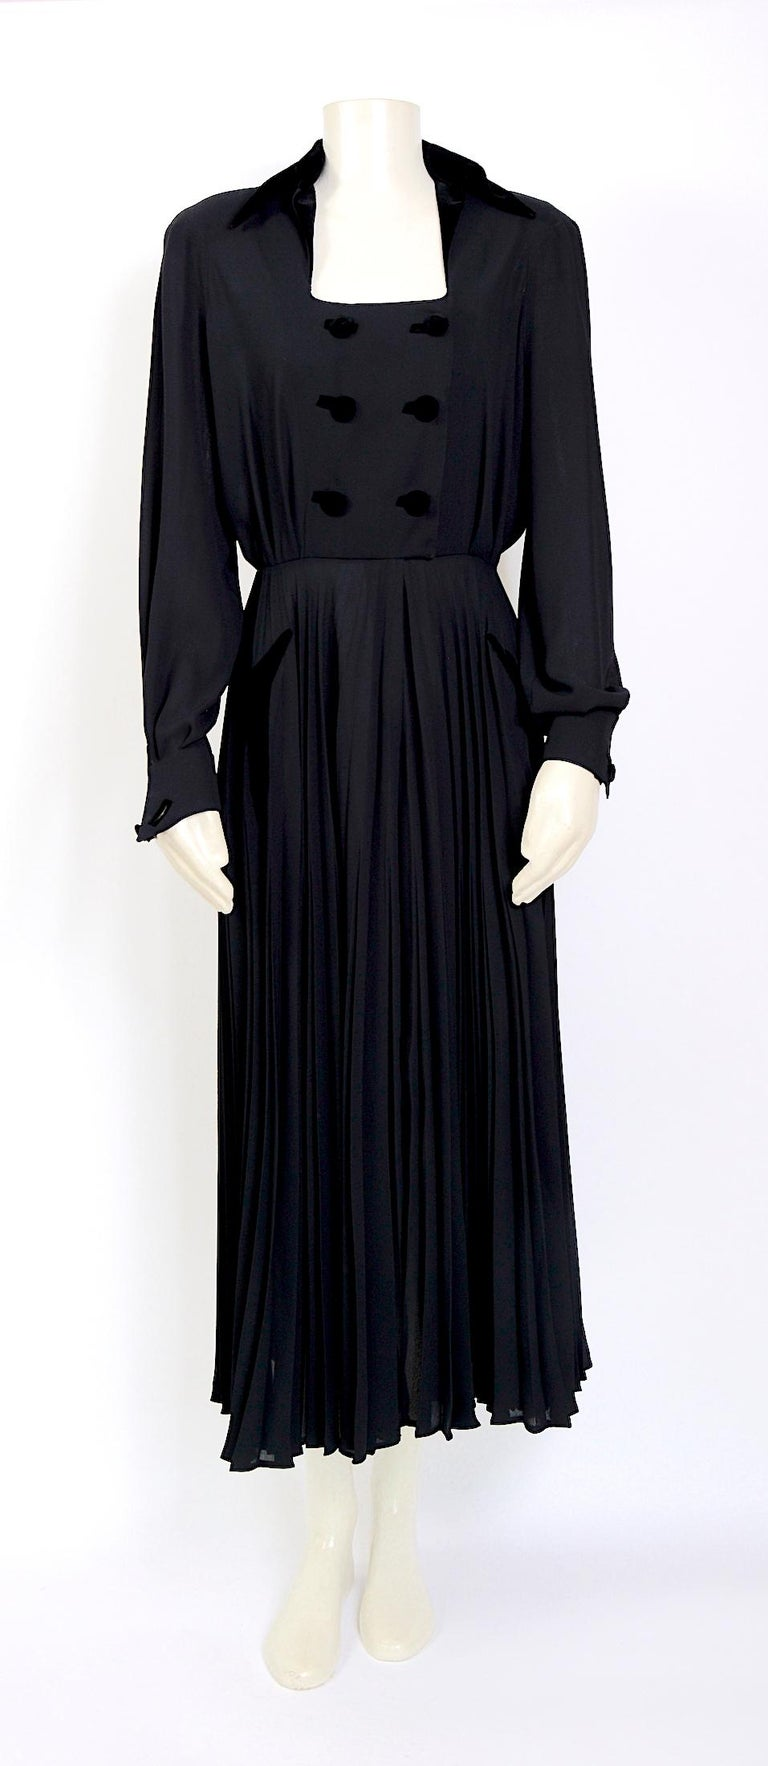 Thierry Mugler couture 1980s vintage black crepe dress with black velvet detailing on the collar, buttons, cuffs, pockets, and an attached full plissé soleil skirt. This dress has been in our collection for some time now and again we are so